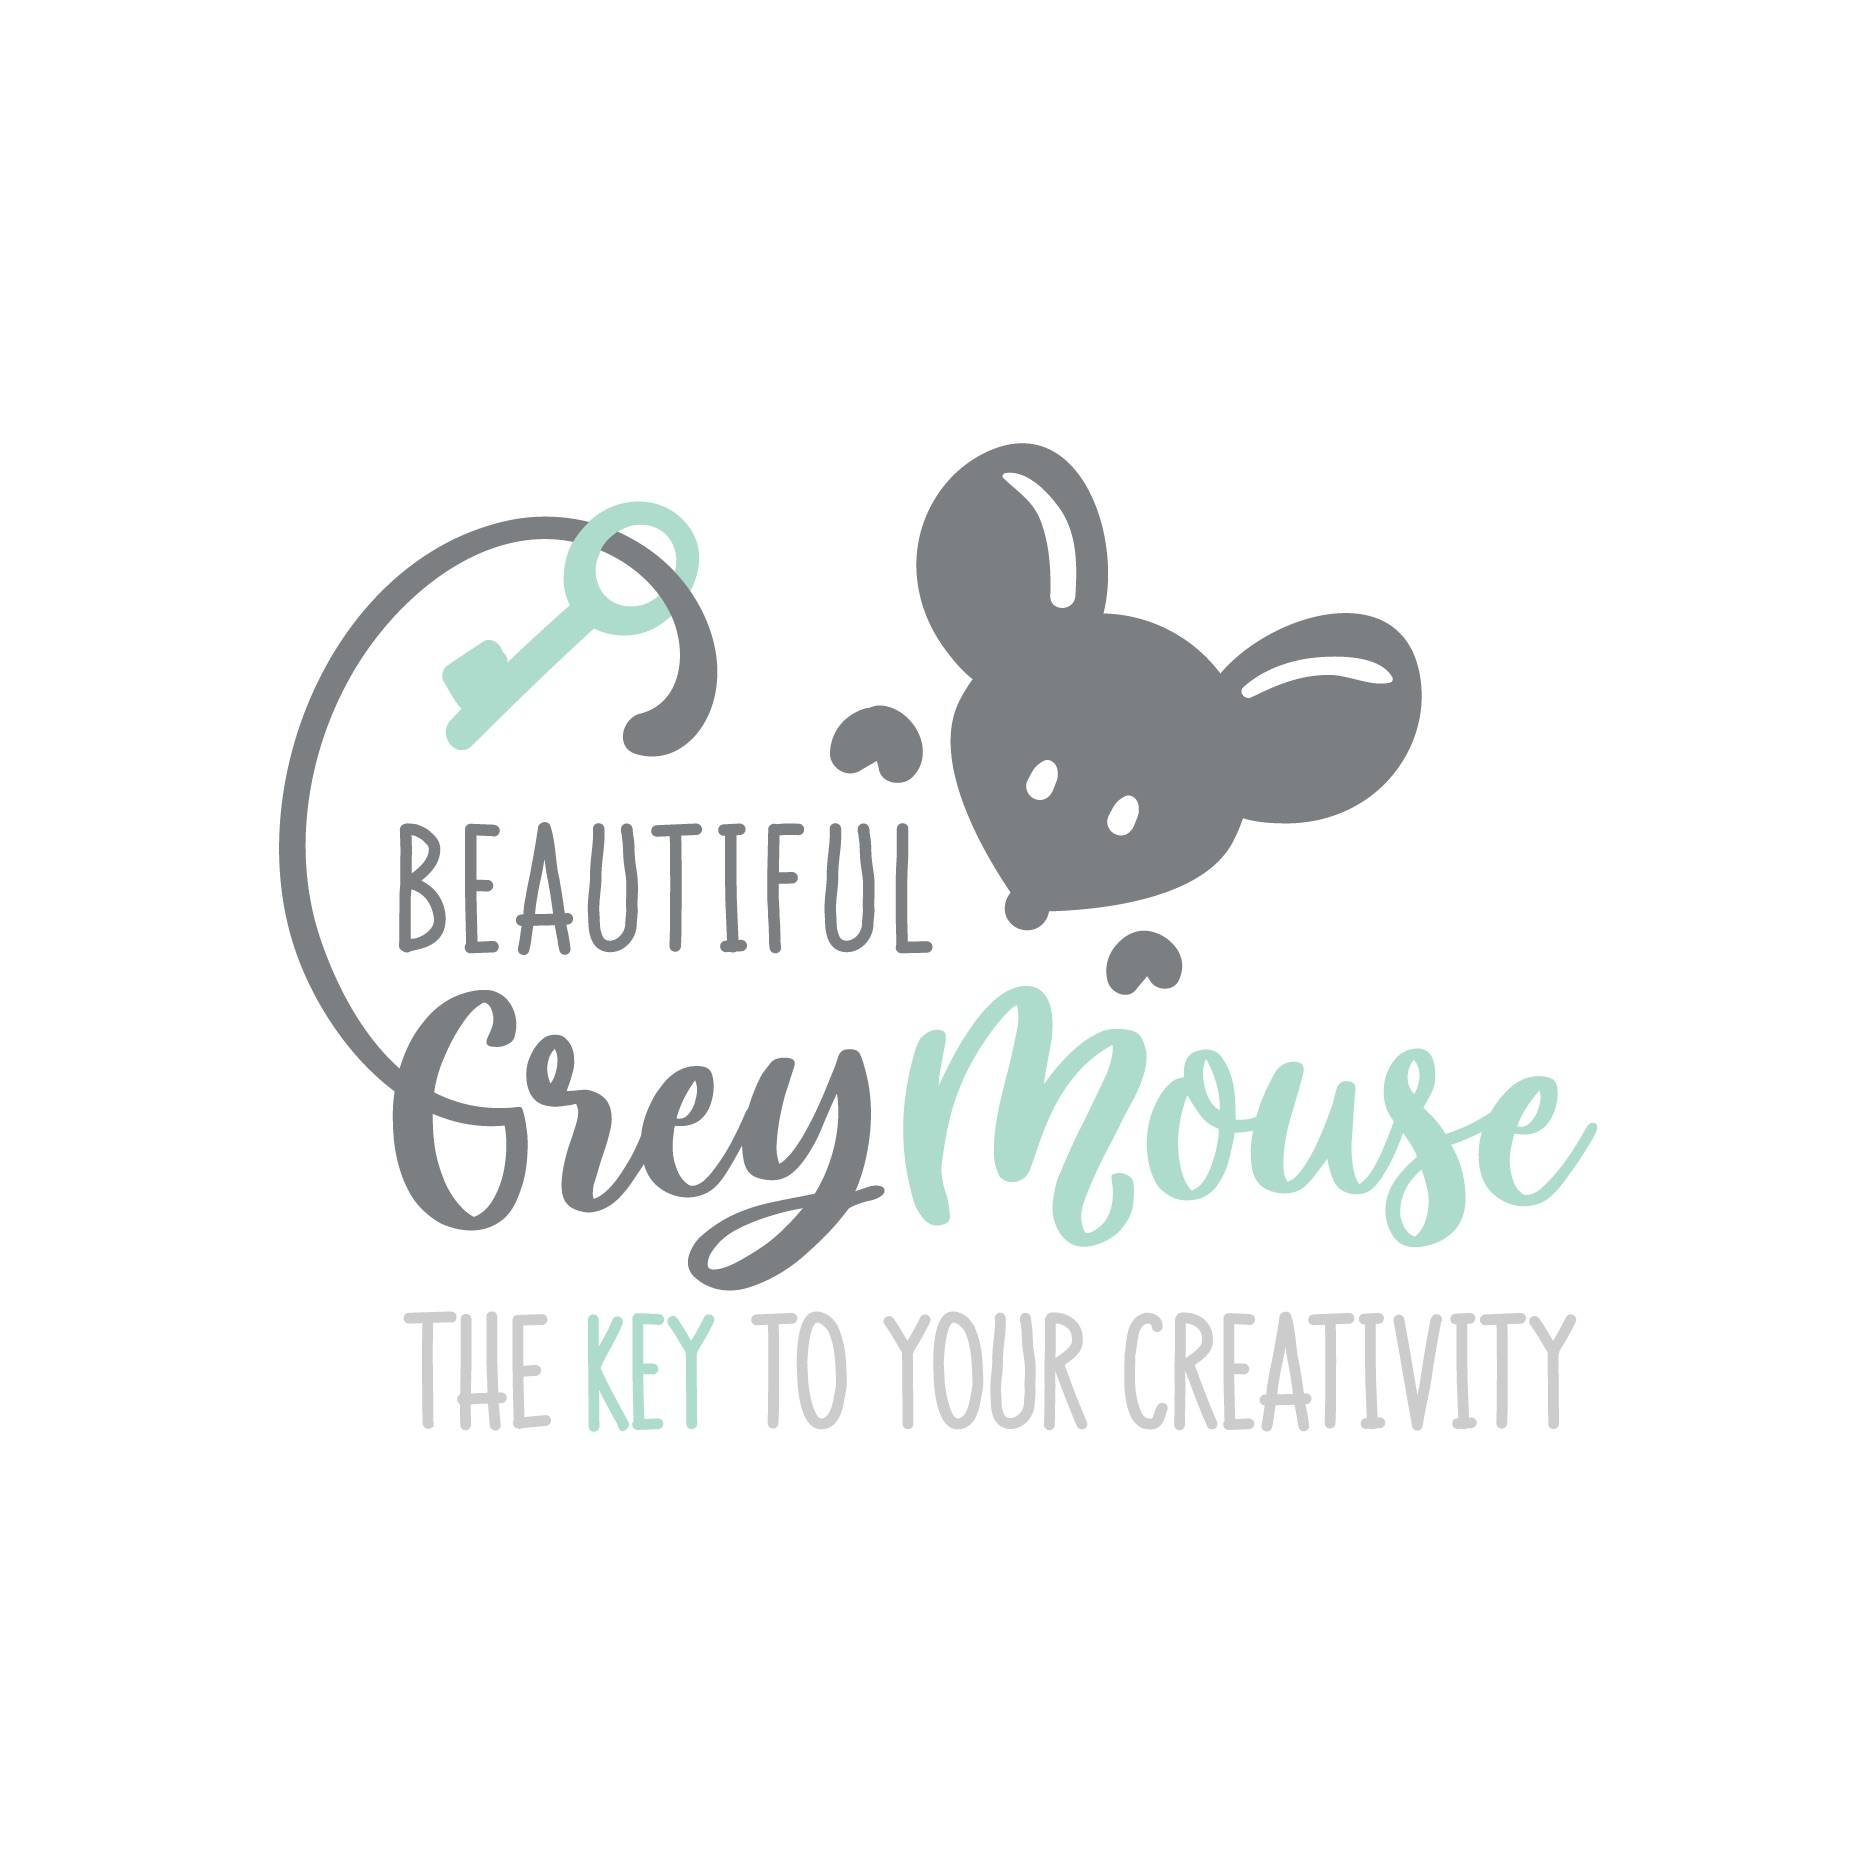 Beautifulgreymouse